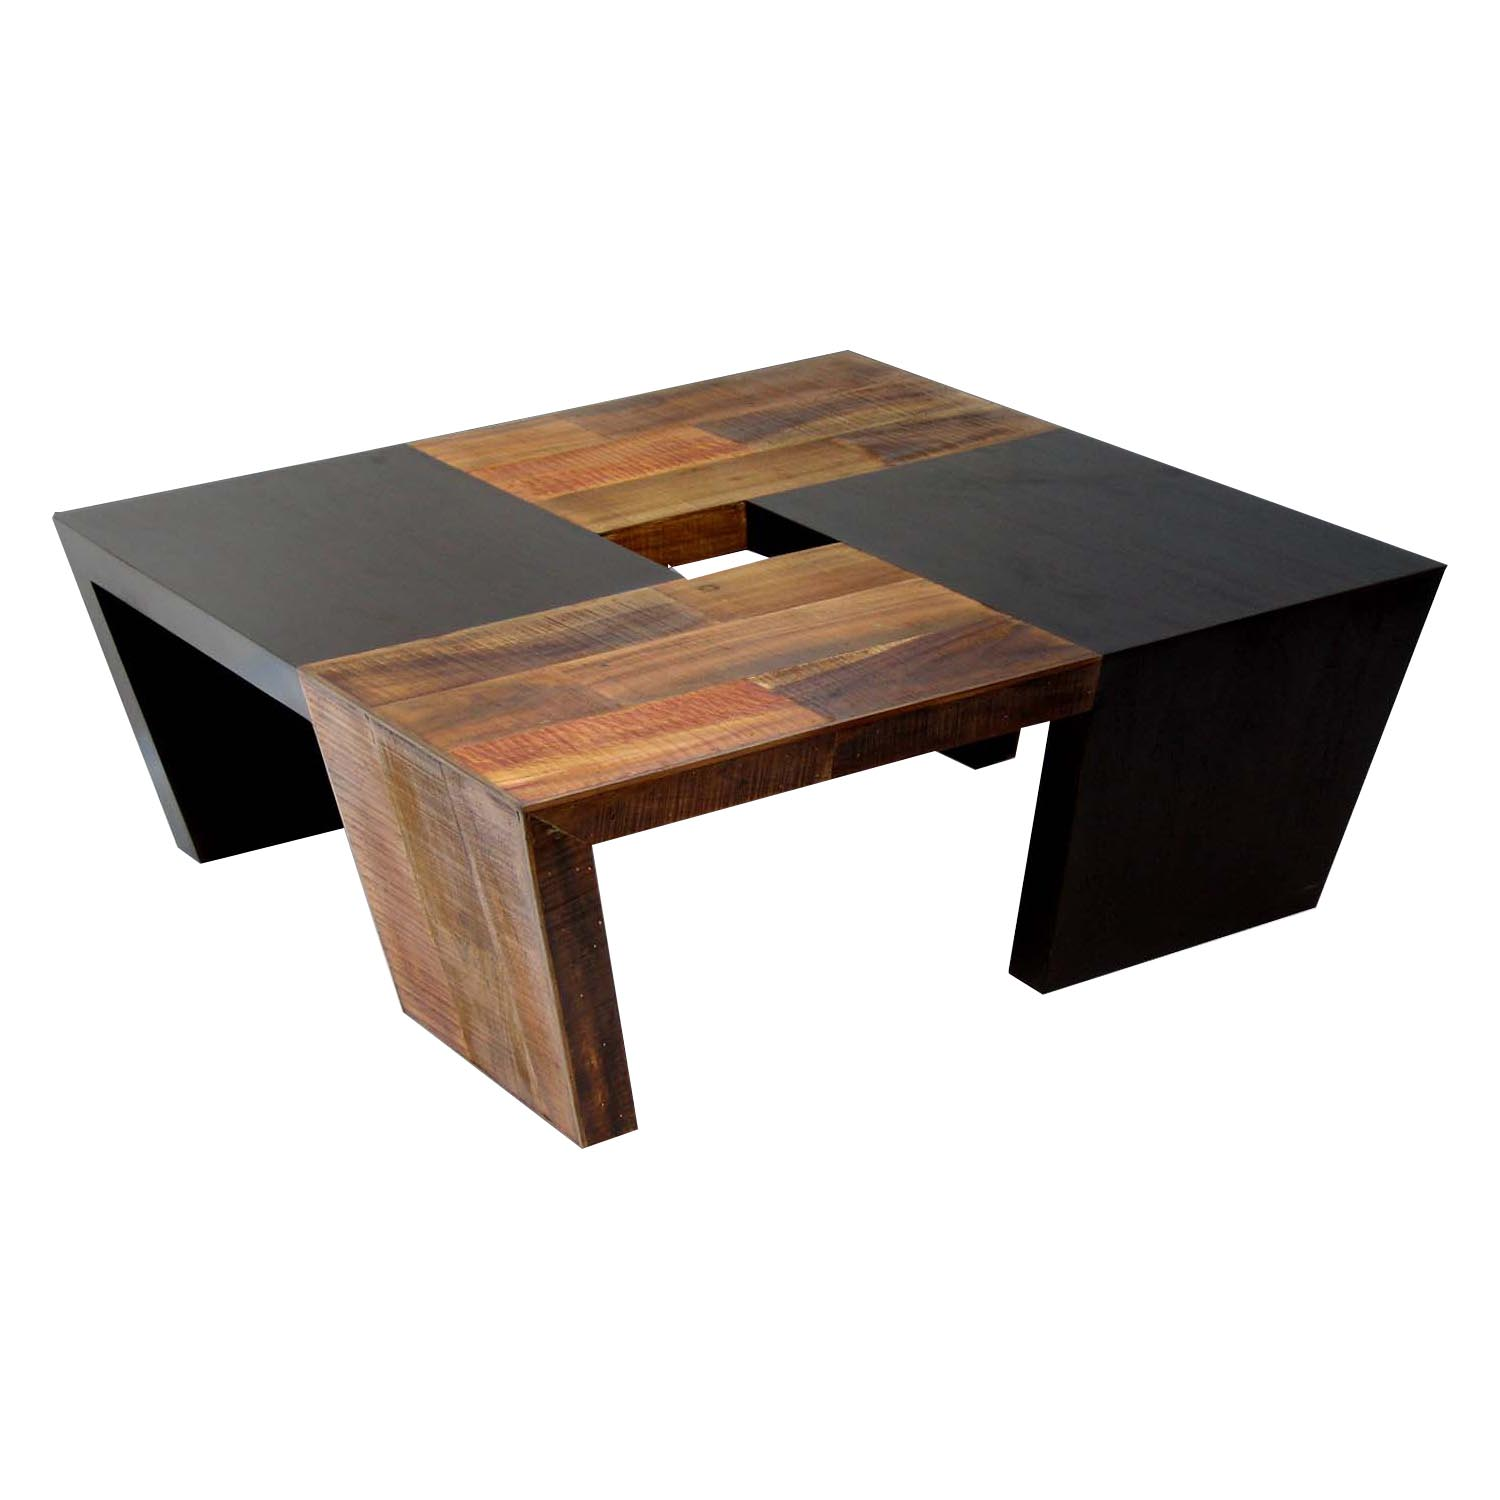 Modern wood coffee table coffee table design ideas for Modern style coffee tables